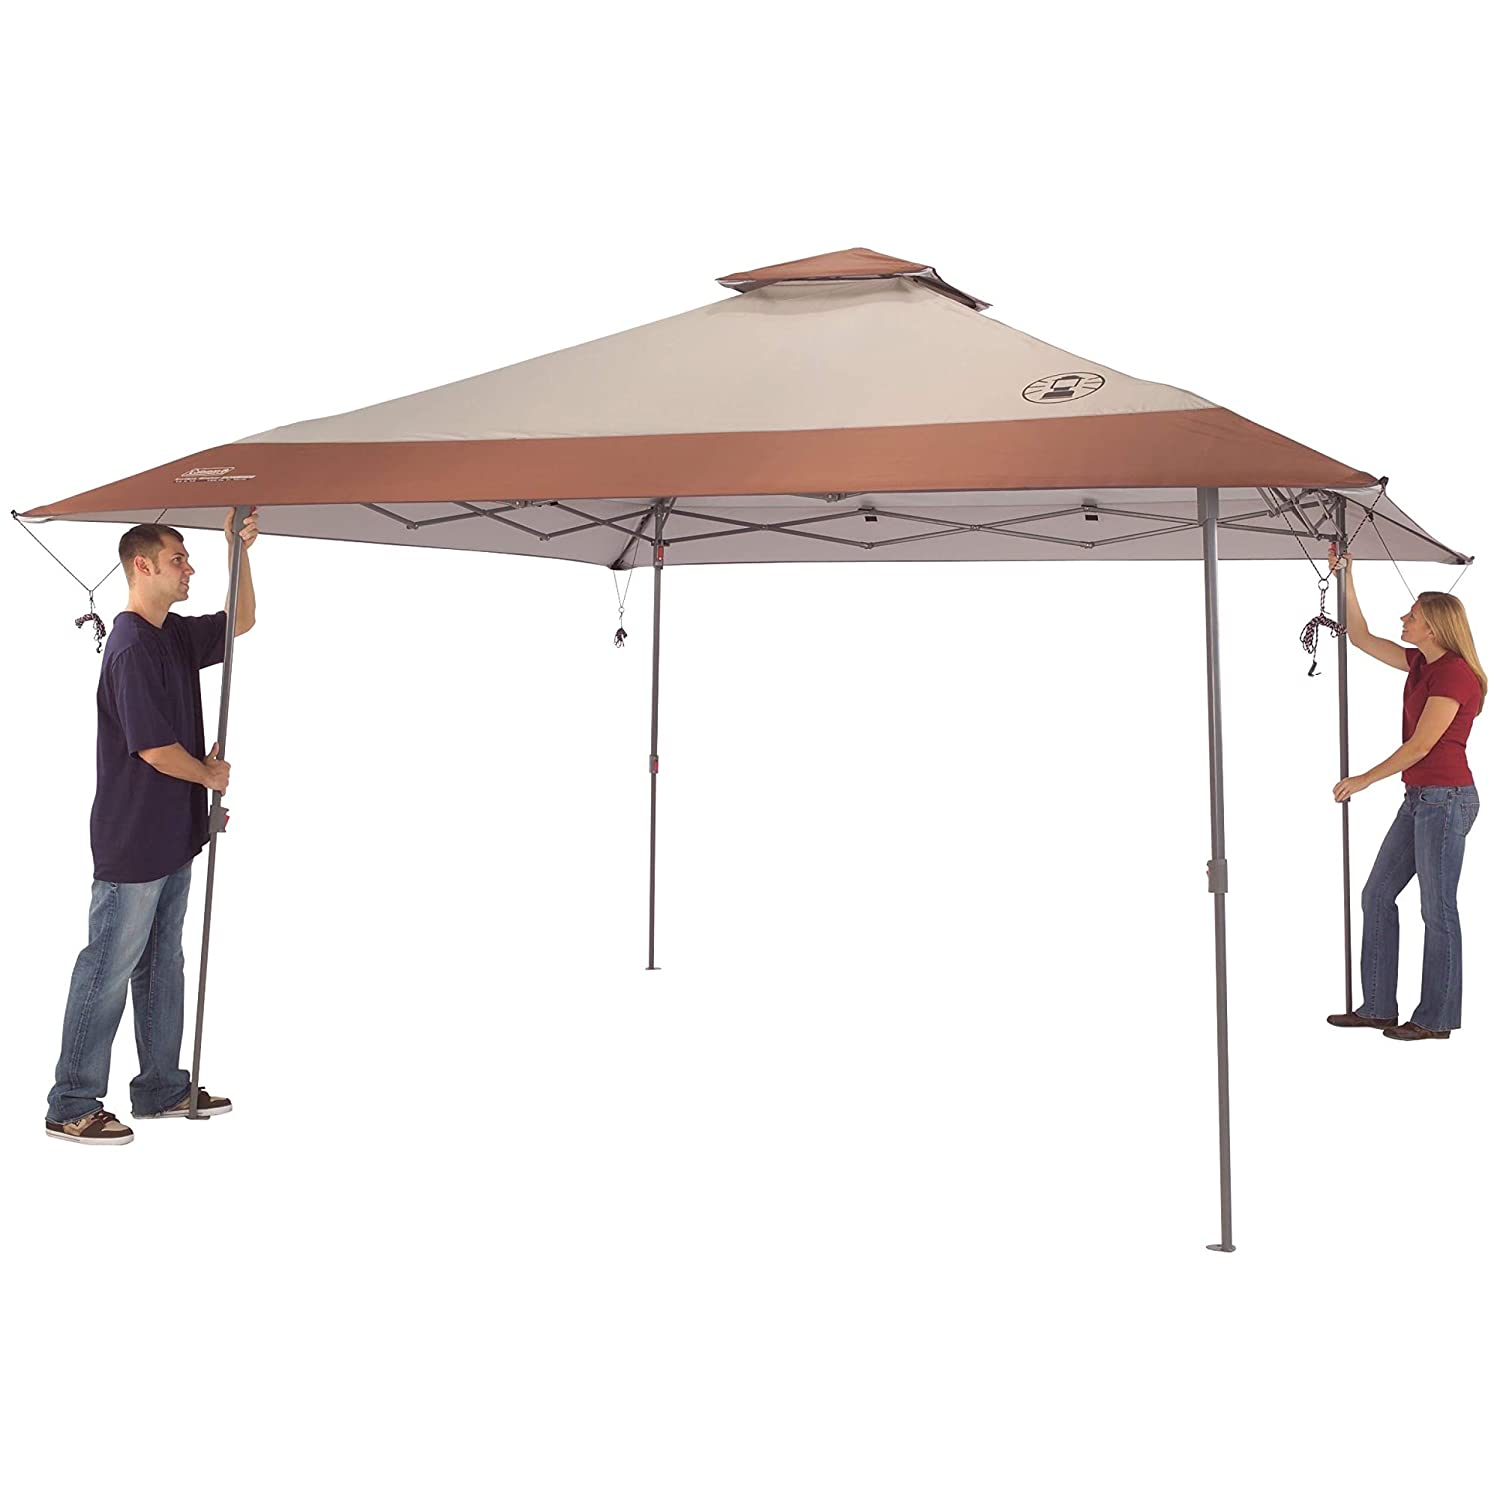 How to setup Coleman Instant Pop-Up Canopy Tent